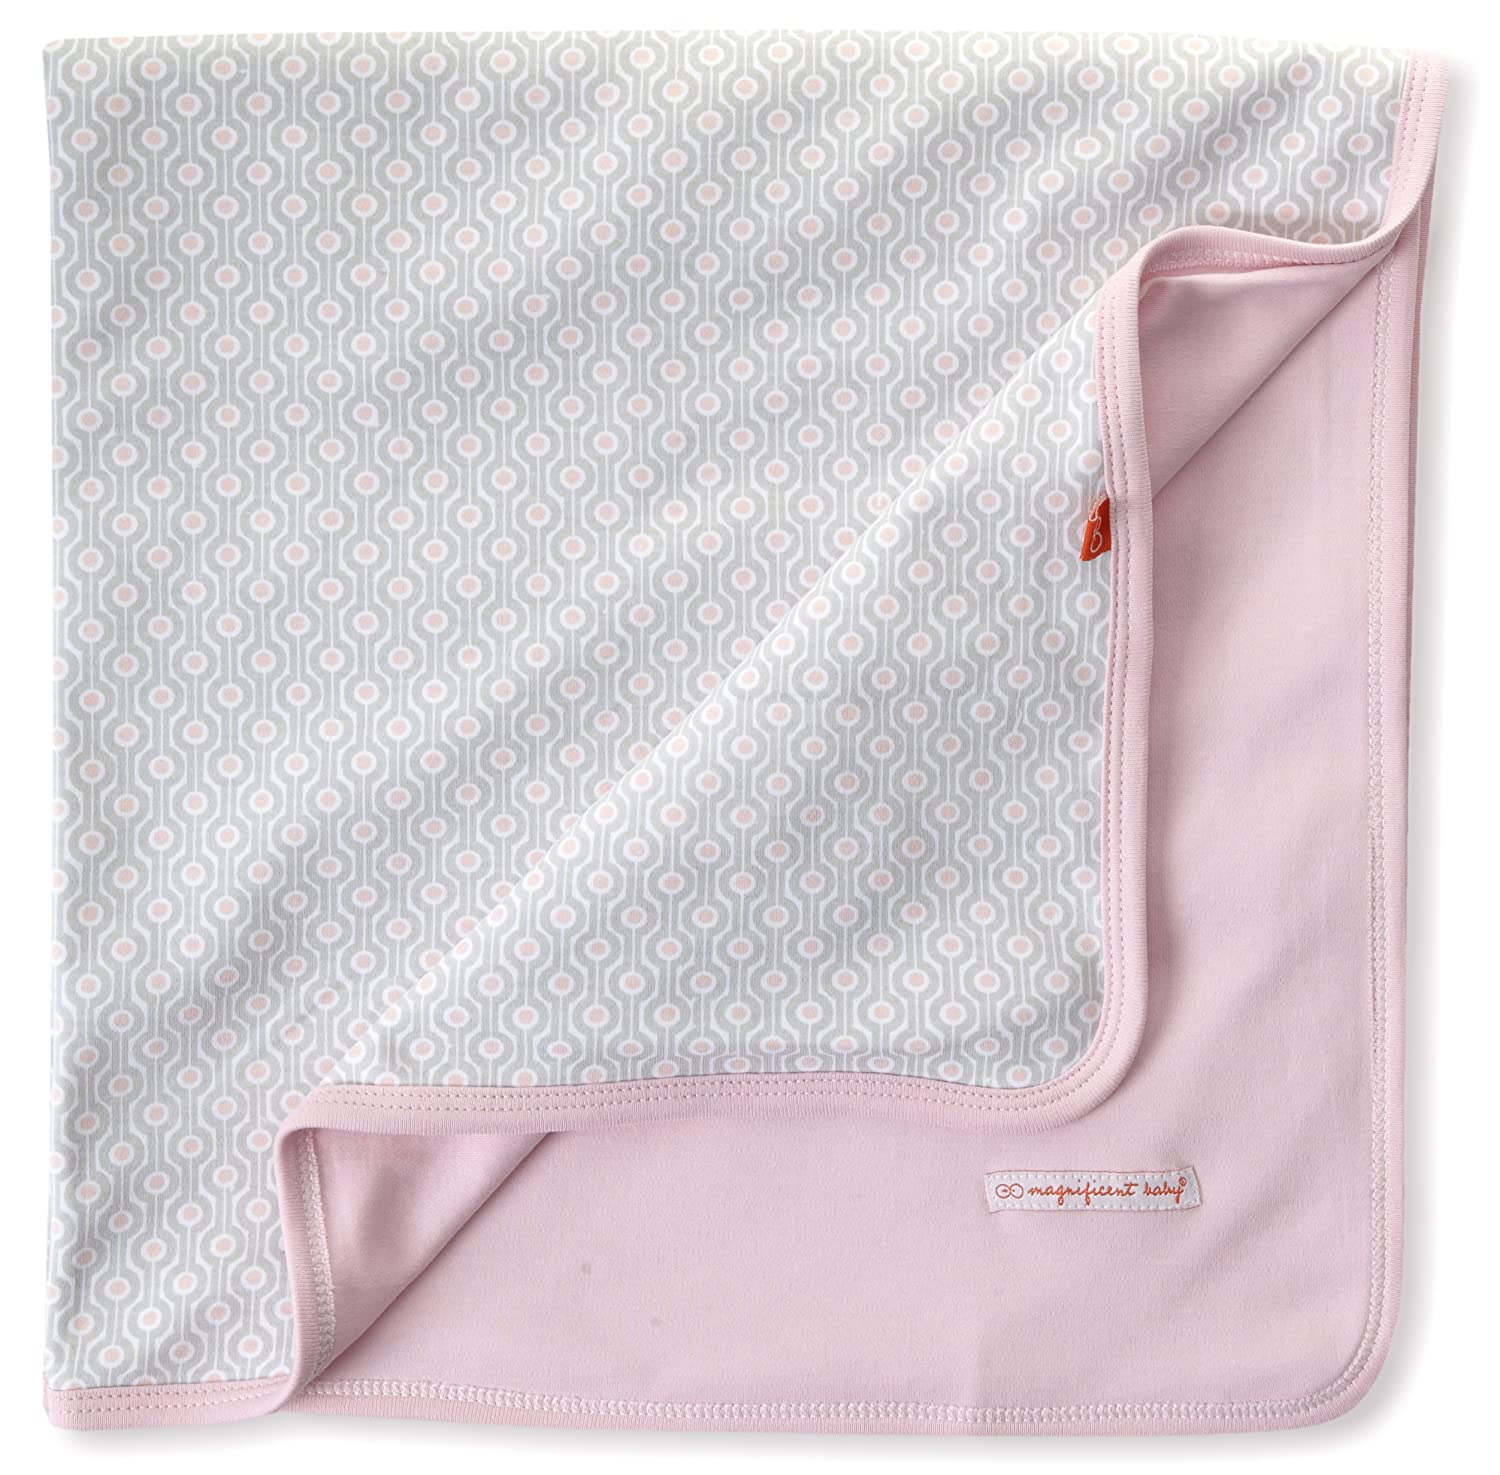 Magnificent Baby-Girls Newborn Reversible Blanket Mod Dots One-Size 2130G